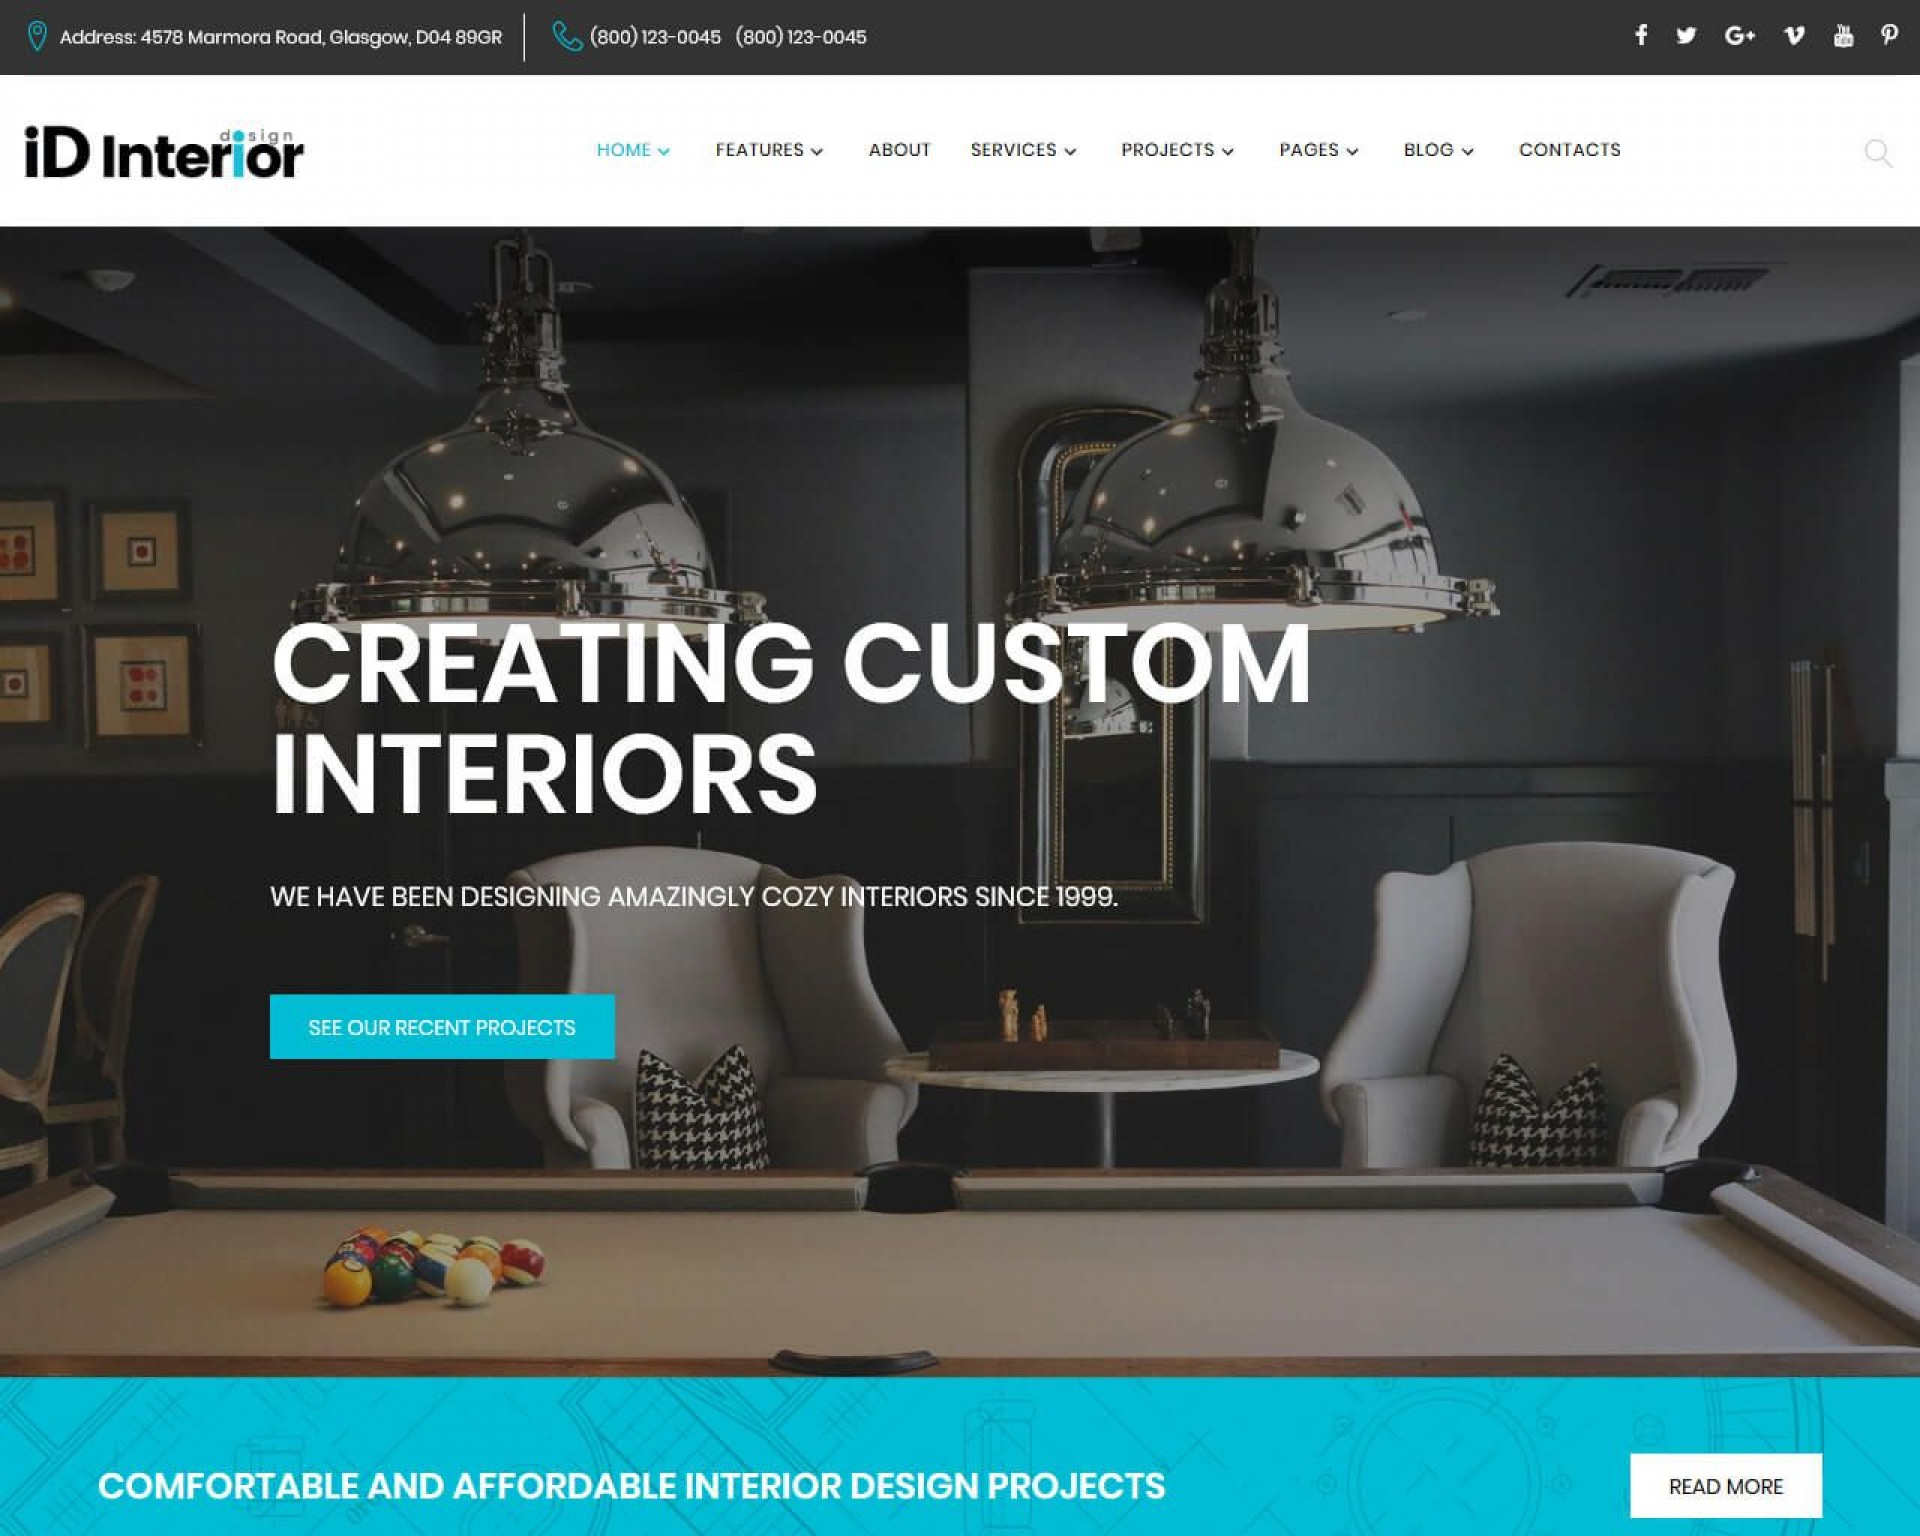 004 Stirring Interior Design Website Template Picture  Templates Company Free Download Html1920